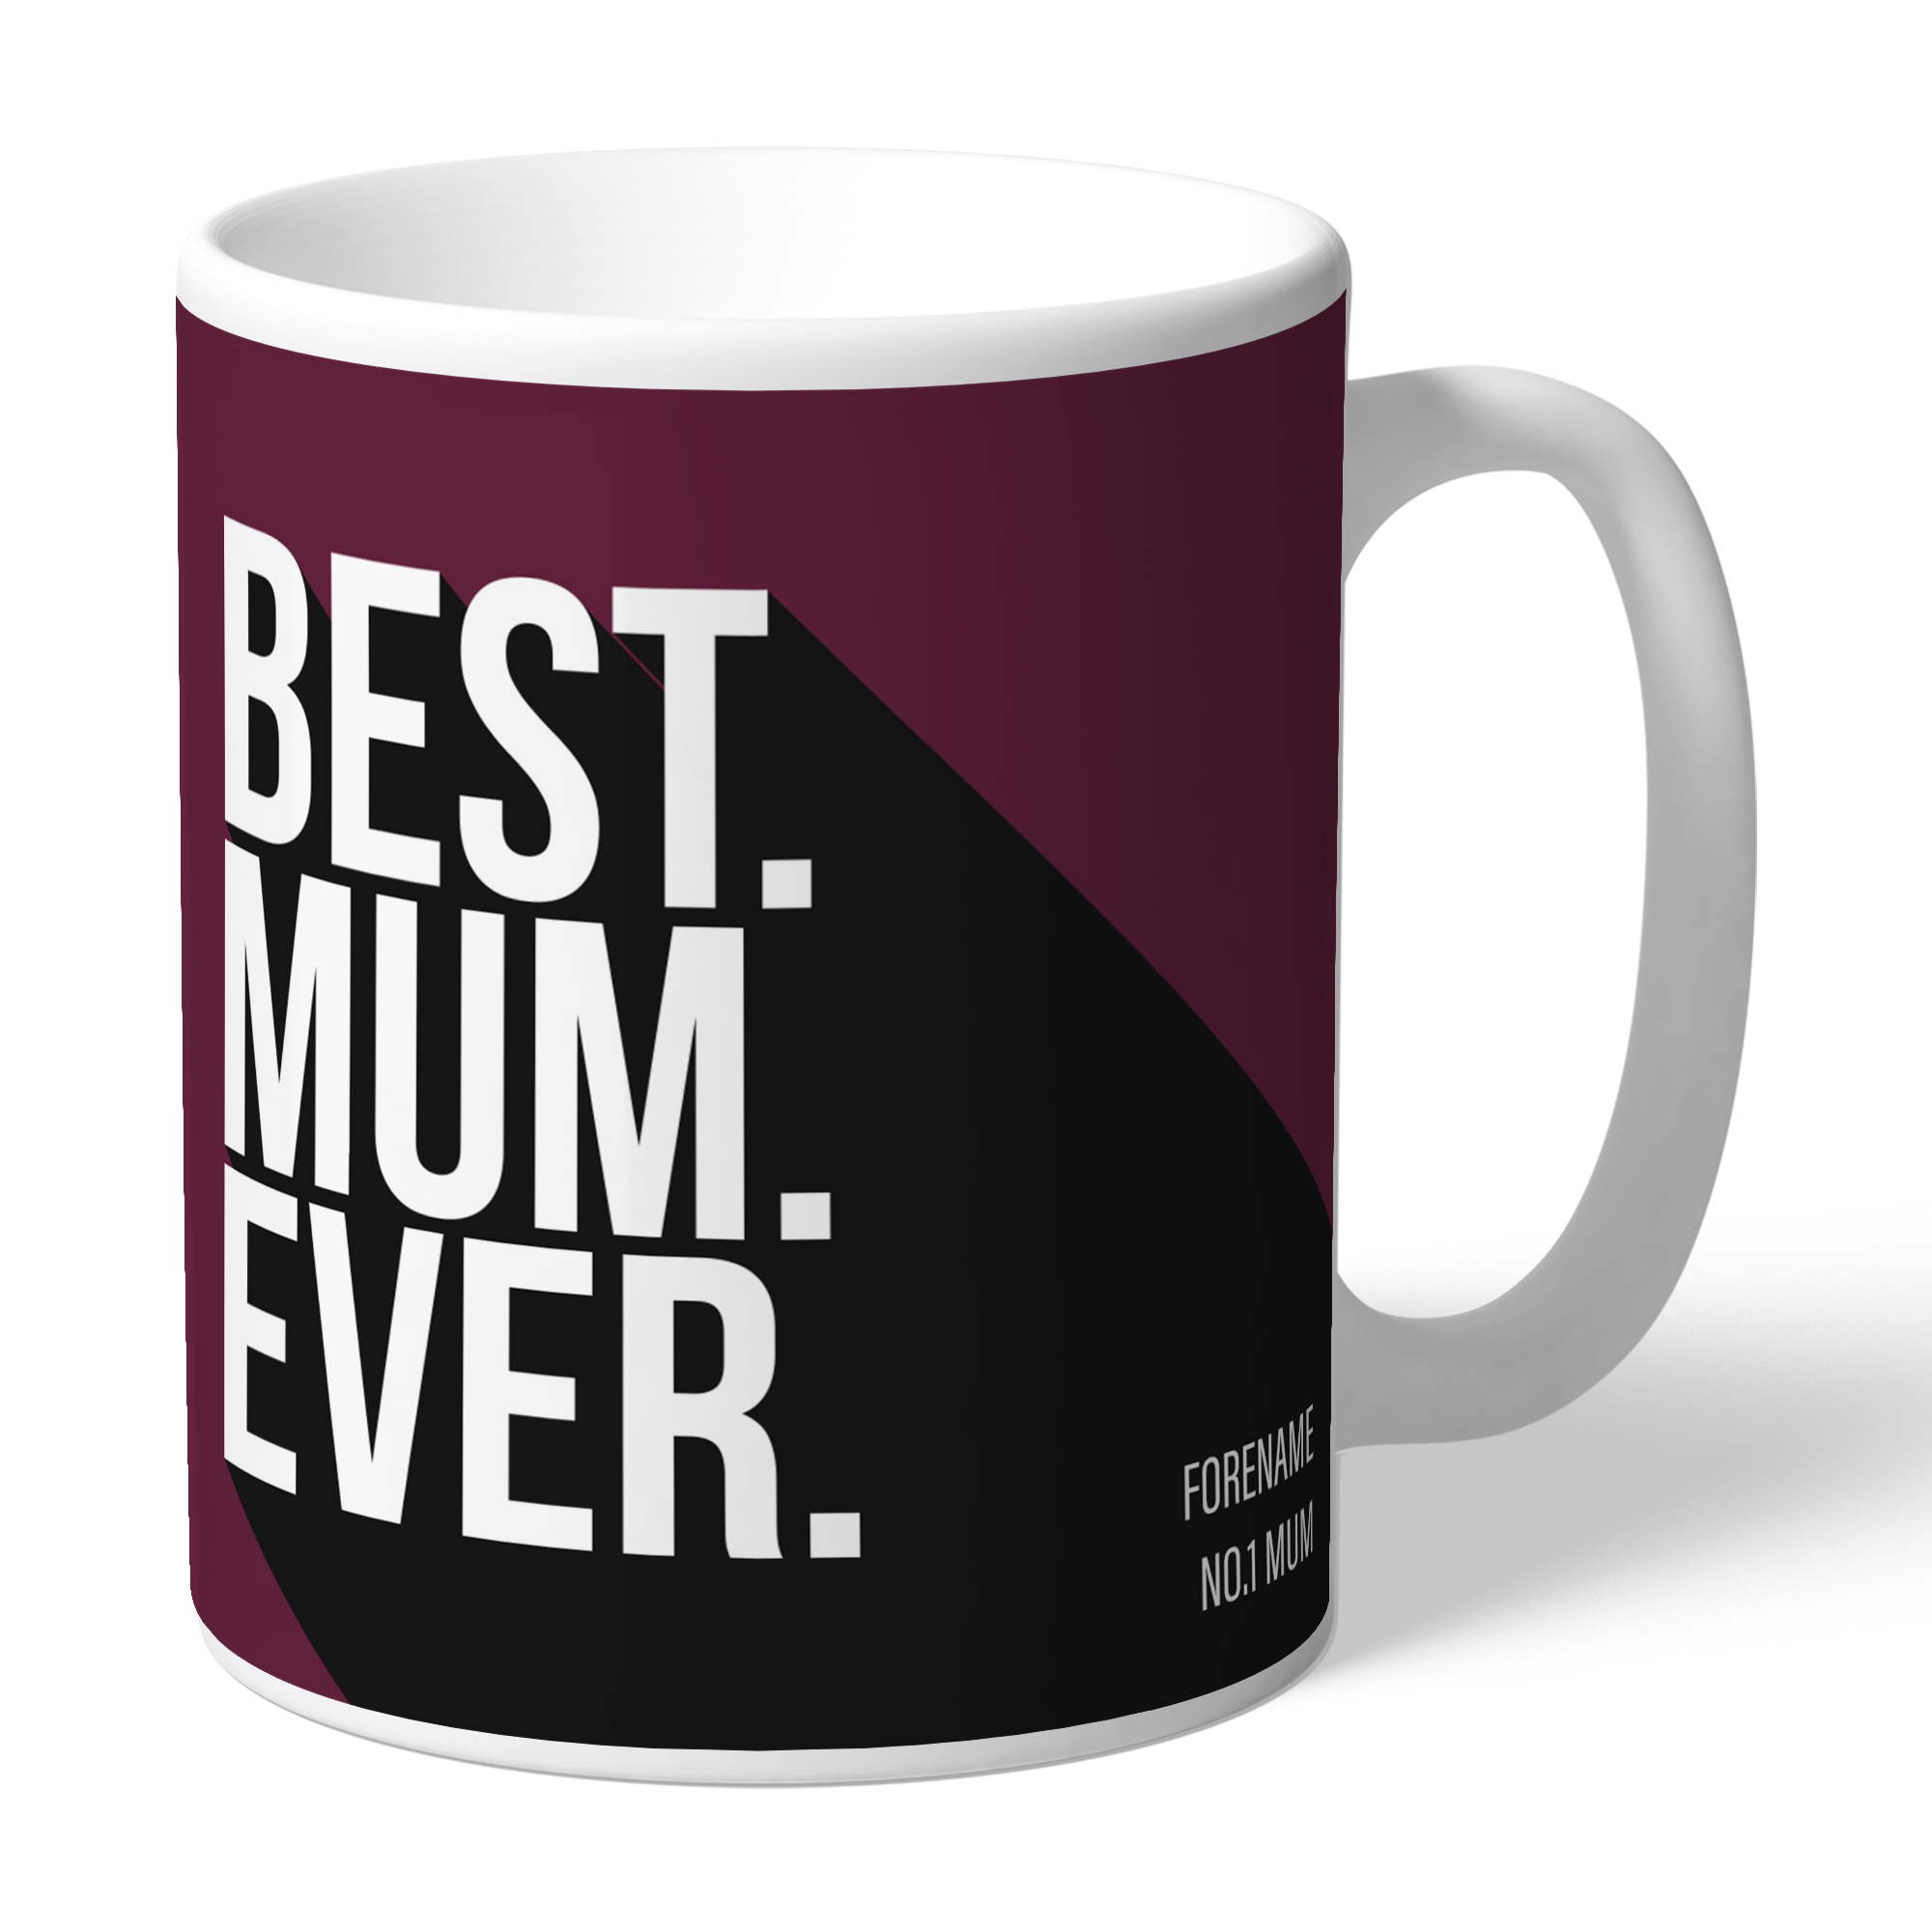 Burnley FC Best Mum Ever Mug